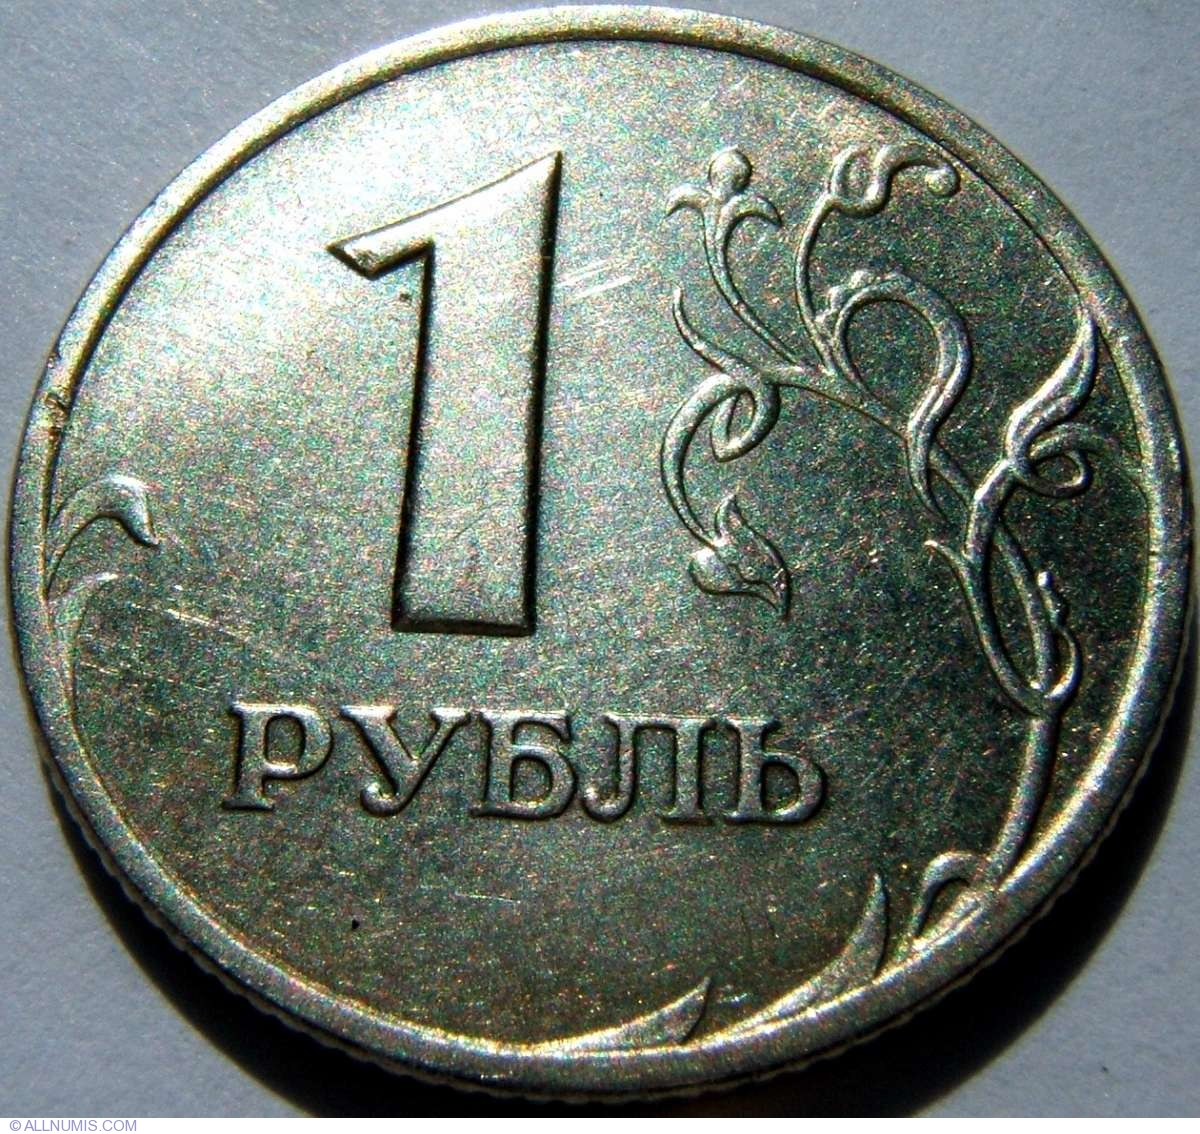 Coin Russia 1997 1 rouble